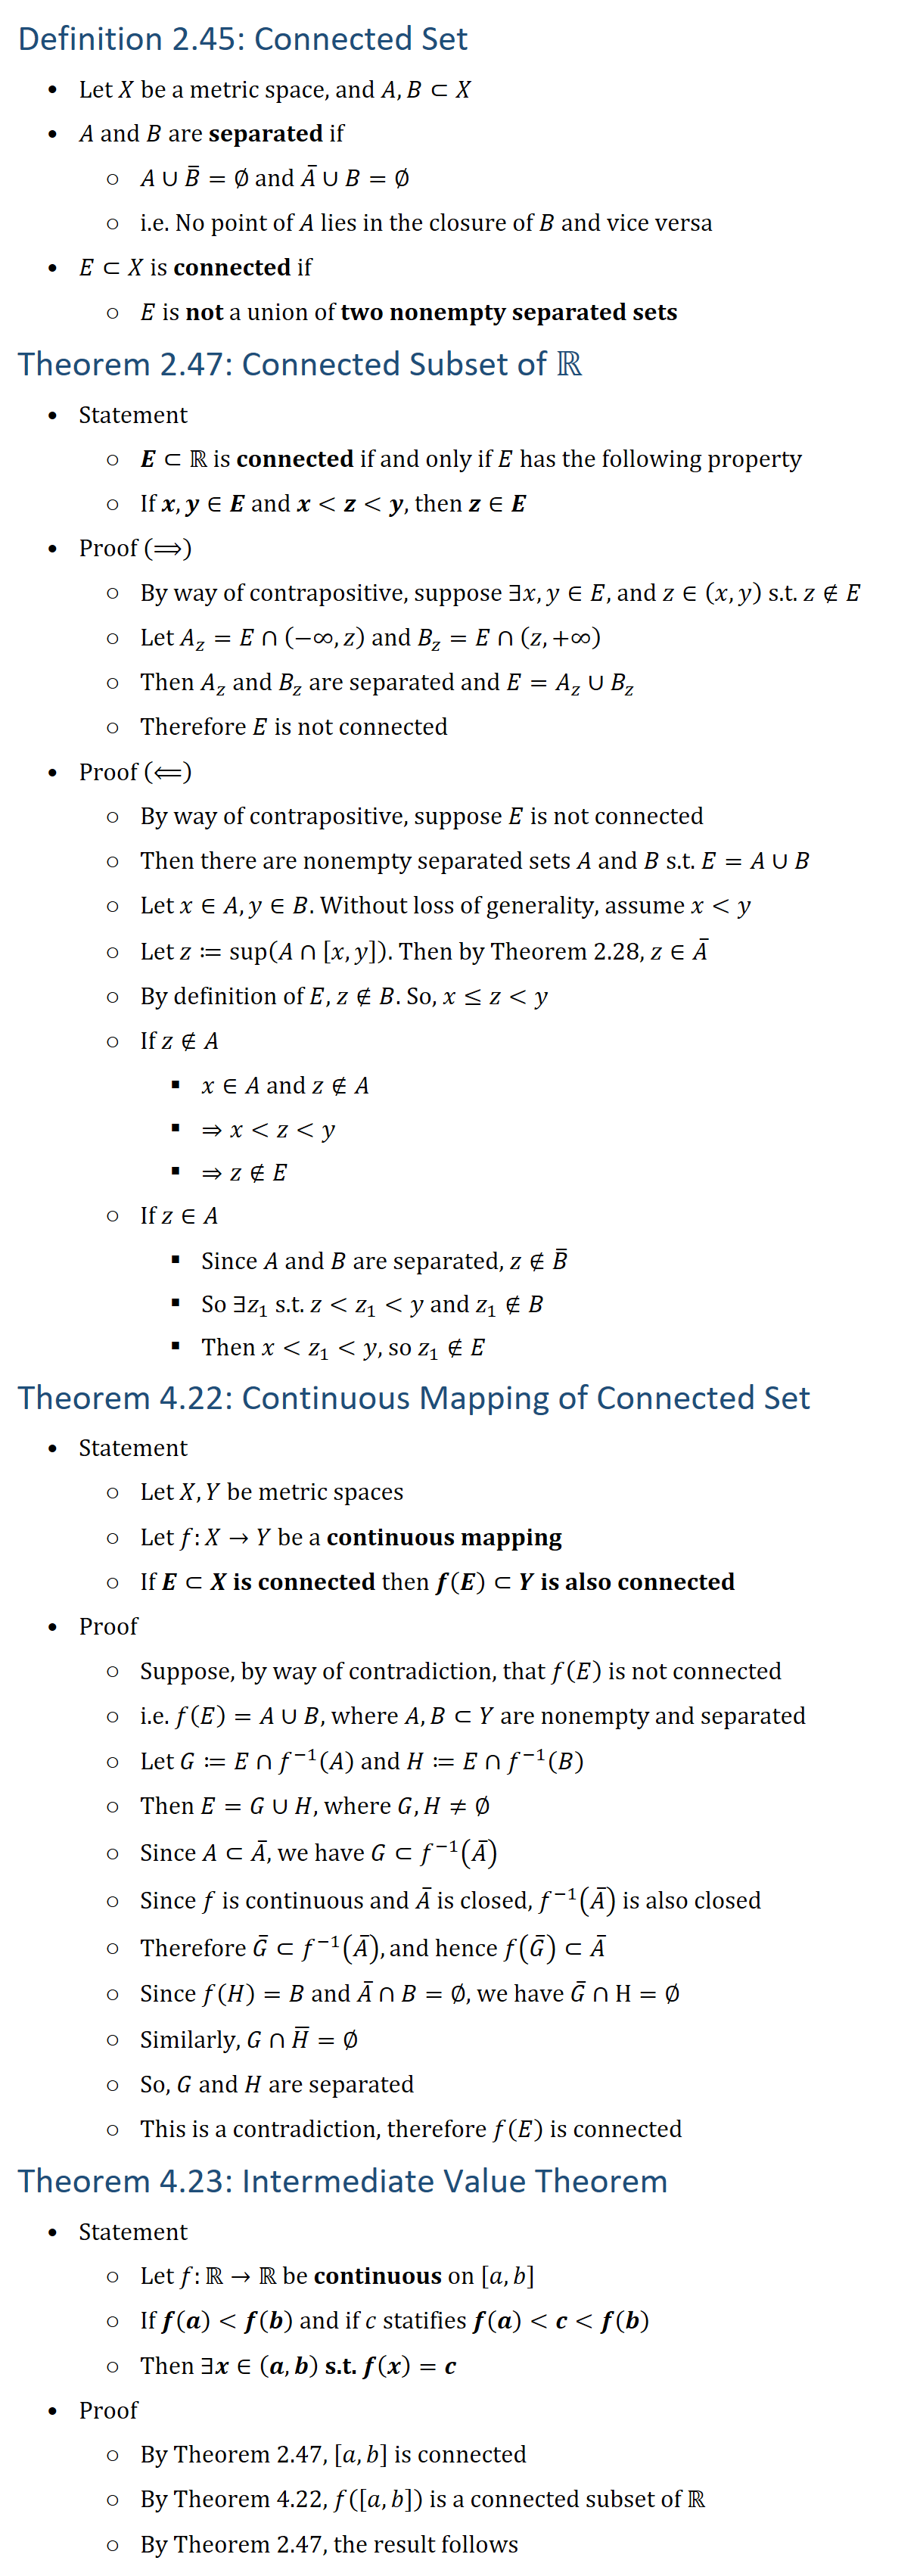 "Definition 2.45: Connected Set • Let X be a metric space, and A,B⊂X • A and B are separated if ○ A∪B ̅=∅ and A ̅∪B=∅ ○ i.e. No point of A lies in the closure of B and vice versa • E⊂X is connected if ○ E is not a union of two nonempty separated sets Theorem 2.47: Connected Subset of R • Statement ○ E⊂R is connected if and only if E has the following property ○ If x,y∈E and x z y, then z∈E • Proof (⟹) ○ By way of contrapositive, suppose ∃x,y∈E, and z∈(x,y) s.t. z∉E ○ Let A_z=E∩(−∞,z) and B_z=E∩(z,+∞) ○ Then A_z and B_z are separated and E=A_z∪B_z ○ Therefore E is not connected • Proof (⟸) ○ By way of contrapositive, suppose E is not connected ○ Then there are nonempty separated sets A and B s.t. E=A∪B ○ Let x∈A,y∈B. Without loss of generality, assume x y ○ Let z≔sup⁡(A∩[x,y]). Then by Theorem 2.28, z∈A ̅ ○ By definition of E, z∉B. So, x≤z y ○ If z∉A § x∈A and z∉A § ⇒x z y § ⇒z∉E ○ If z∈A § Since A and B are separated, z∉B ̅ § So ∃z_1 s.t. z z_1 y and z_1∉B § Then x z_1 y, so z_1∉E Theorem 4.22: Continuous Mapping of Connected Set • Statement ○ Let X,Y be metric spaces ○ Let f:X→Y be a continuous mapping ○ If E⊂X is connected then f(E)⊂Y is also connected • Proof ○ Suppose, by way of contradiction, that f(E) is not connected ○ ""i.e."" f(E)=A∪B, where A,B⊂Y are nonempty and separated ○ Let G≔E∩f^(−1) (A) and H≔E∩f^(−1) (B) ○ Then E=G∪H, where G,H≠∅ ○ Since A⊂A ̅, we have G⊂f^(−1) (A ̅ ) ○ Since f is continuous and A ̅ is closed, f^(−1) (A ̅ ) is also closed ○ Therefore G ̅⊂f^(−1) (A ̅ ), and hence f(G ̅ )⊂A ̅ ○ Since f(H)=B and A ̅∩B=∅, we have G ̅∩H=∅ ○ Similarly, G∩H ̅=∅ ○ So, G and H are separated ○ This is a contradiction, therefore f(E) is connected Theorem 4.23: Intermediate Value Theorem • Statement ○ Let f:R→R be continuous on [a,b] ○ If f(a) f(b) and if c statifies f(a) c f(b) ○ Then ∃x∈(a,b) s.t. f(x)=c • Proof ○ By Theorem 2.47, [a,b] is connected ○ By Theorem 4.22, f([a,b]) is a connected subset of R ○ By Theorem 2.47, the result follows"